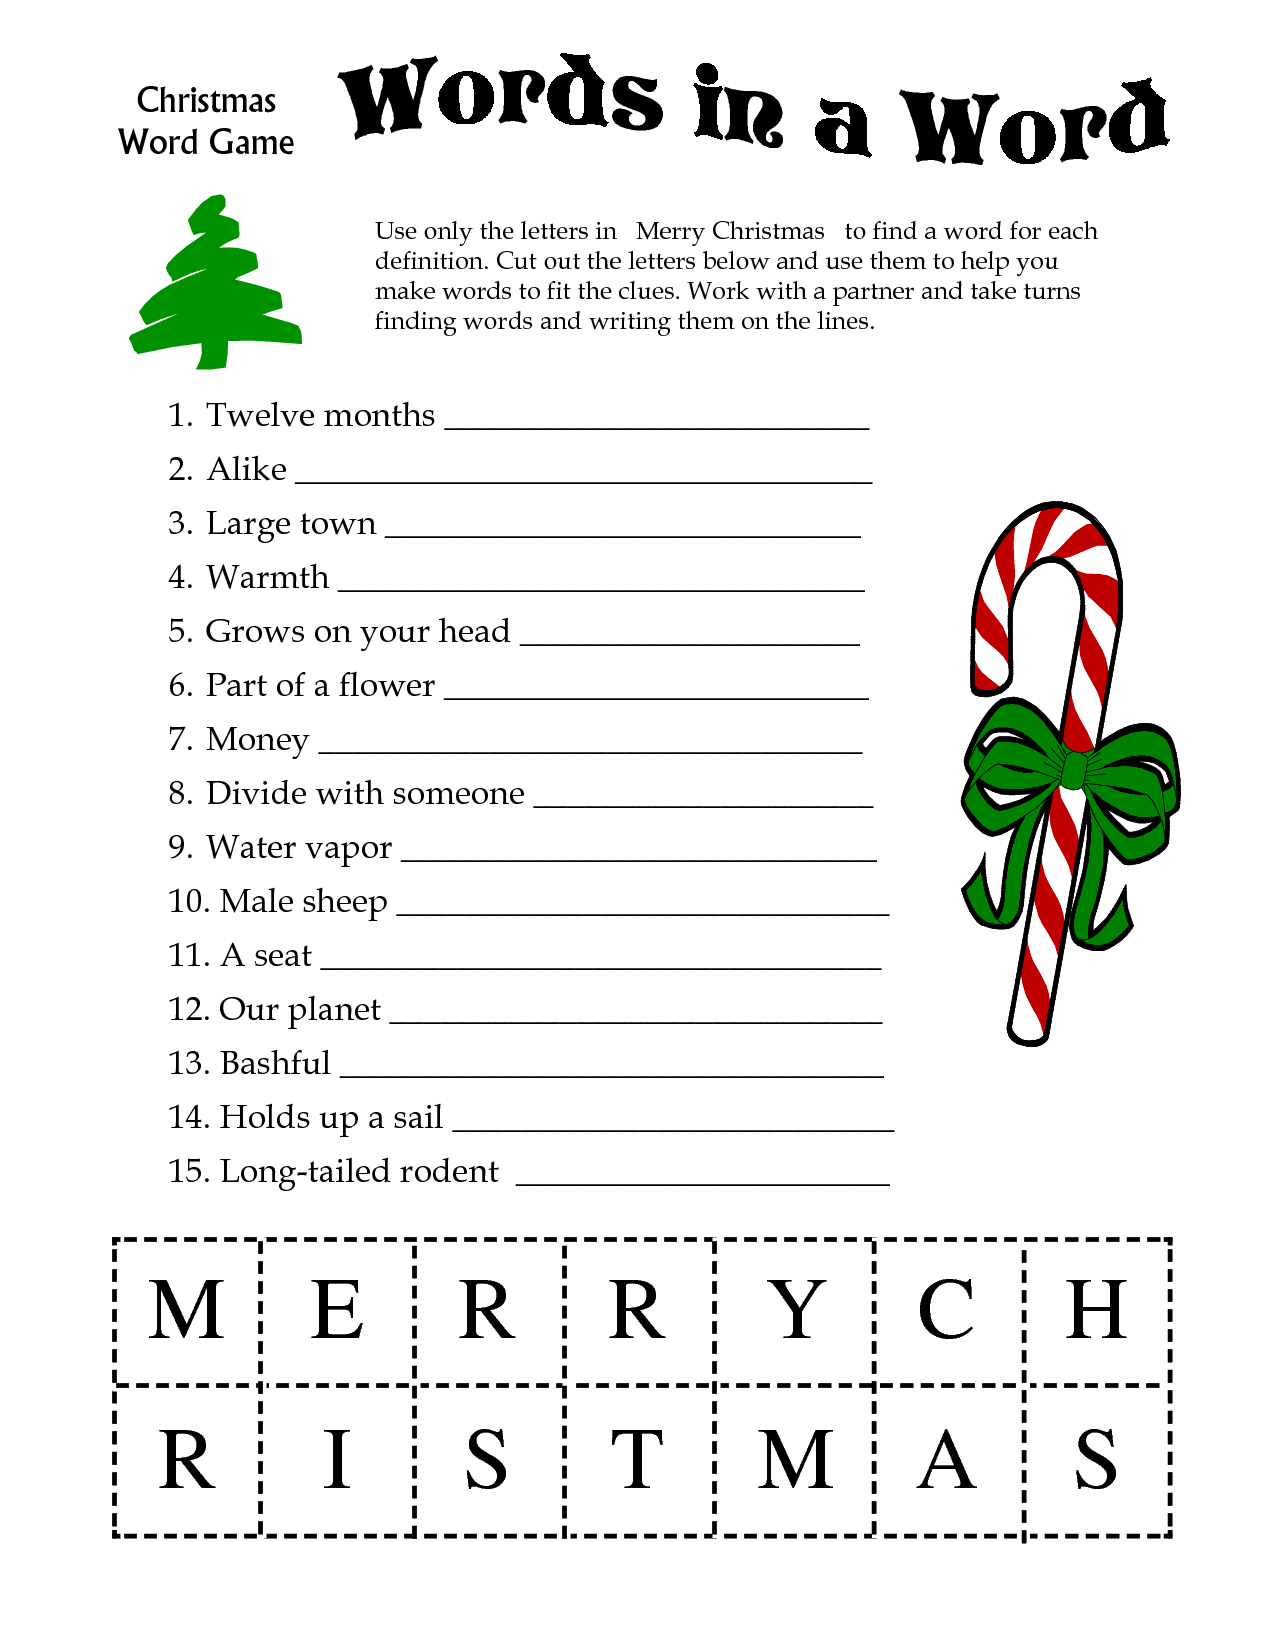 5 Images Of Free Printable Christmas Word Games | Printablee - Free Printable Christmas Puzzles And Games